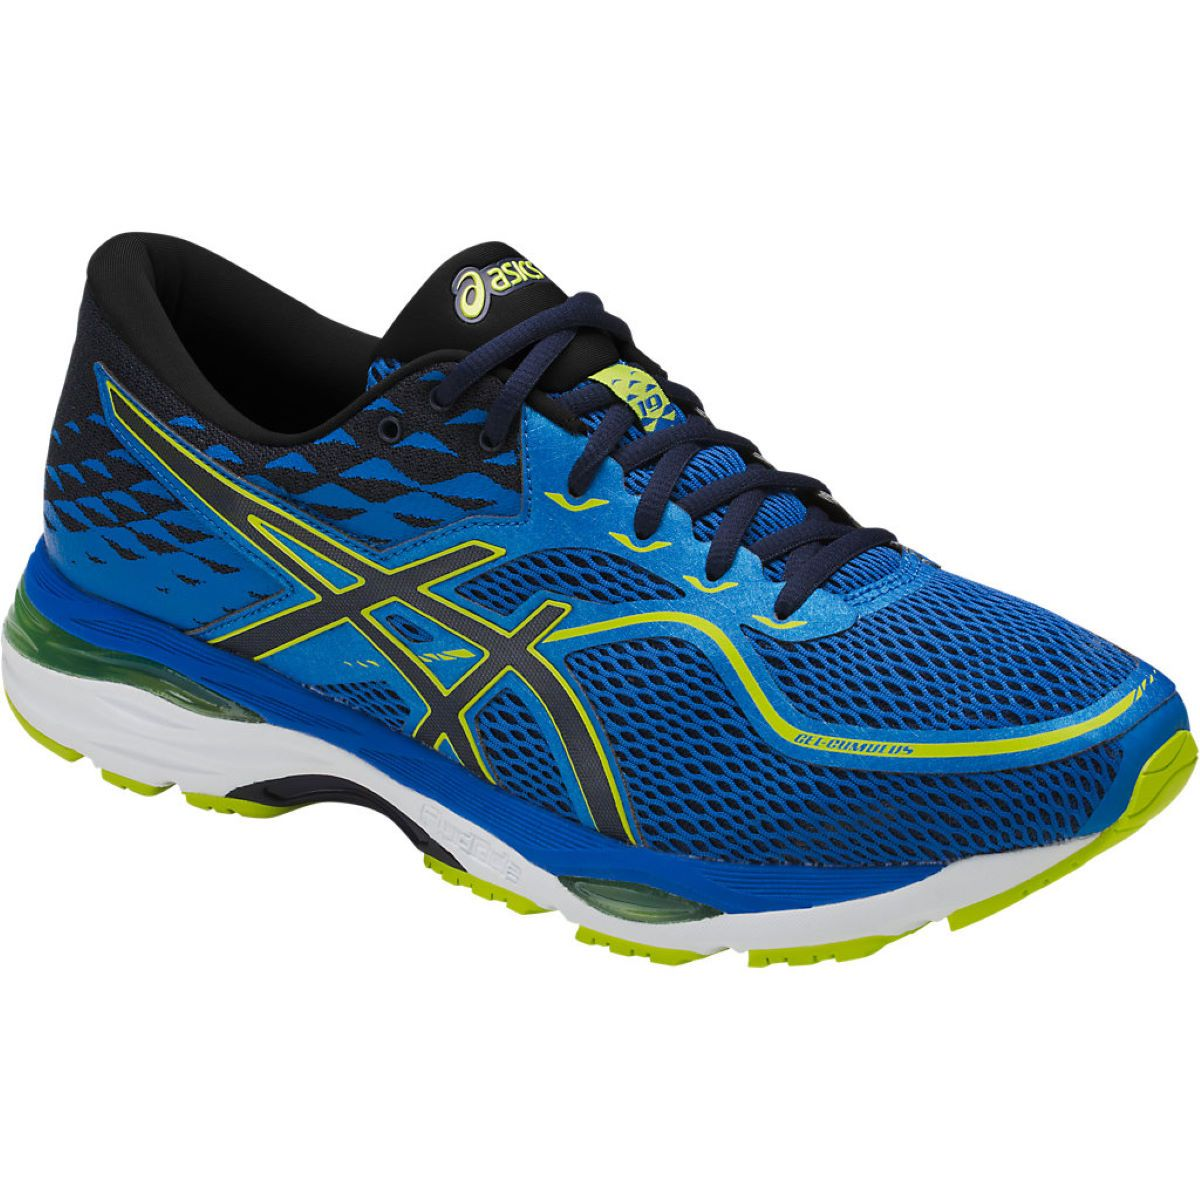 Asics Asics Gel Cumulus 19 Shoes Cushion Running Shoes Cyclingbargains Dealfinder Bike Bikebargains Fitness Visit Our Web Site To Find The Best C Correre